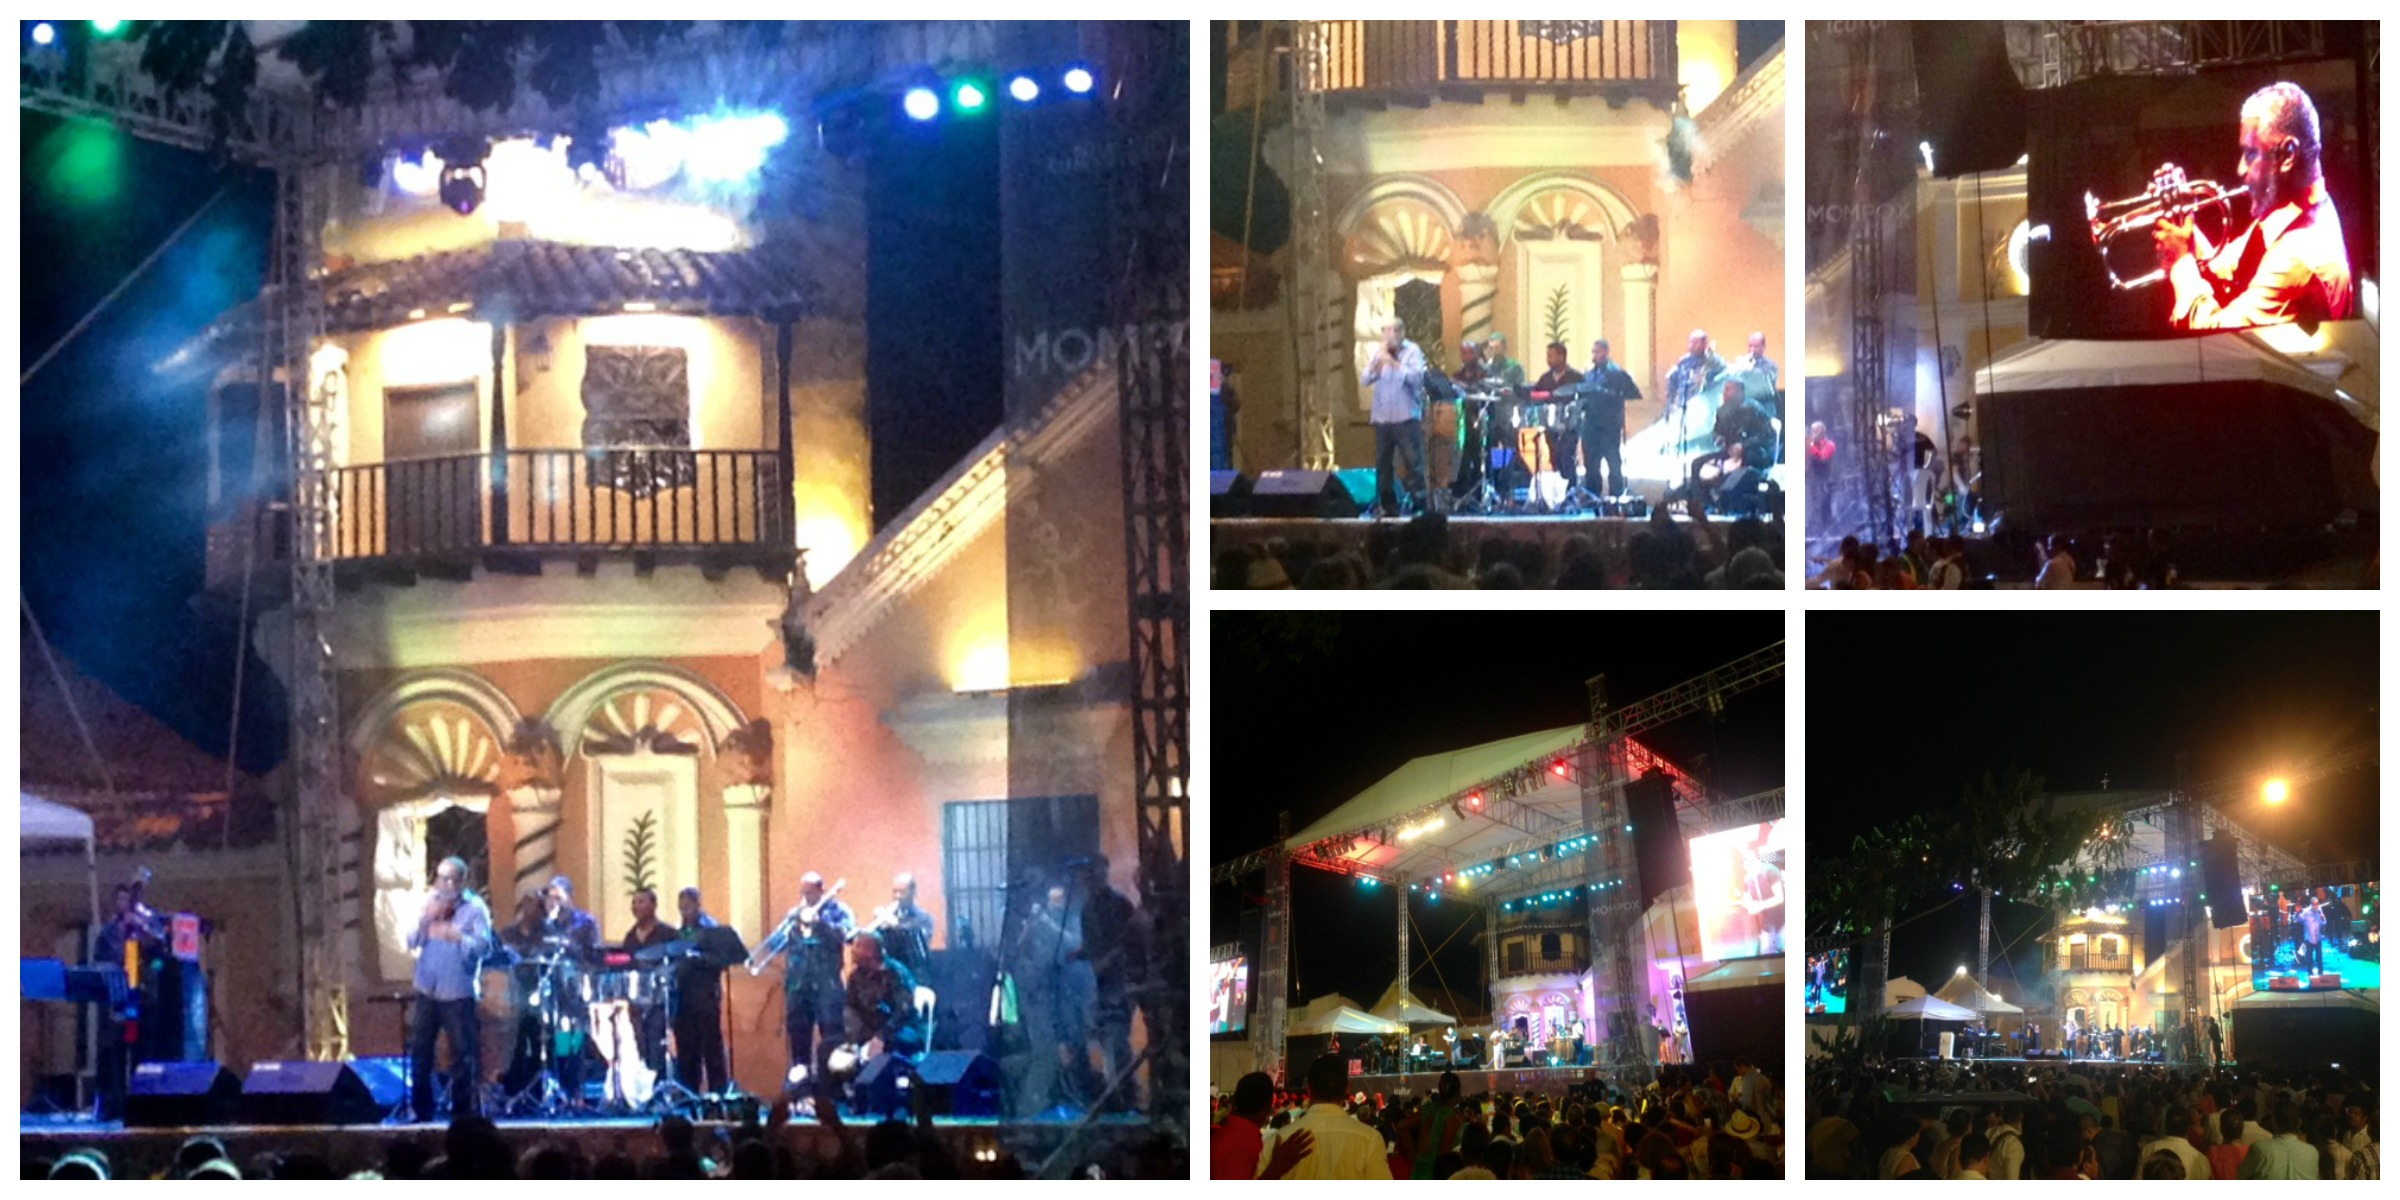 concerts during the Mompox Jazz Festival